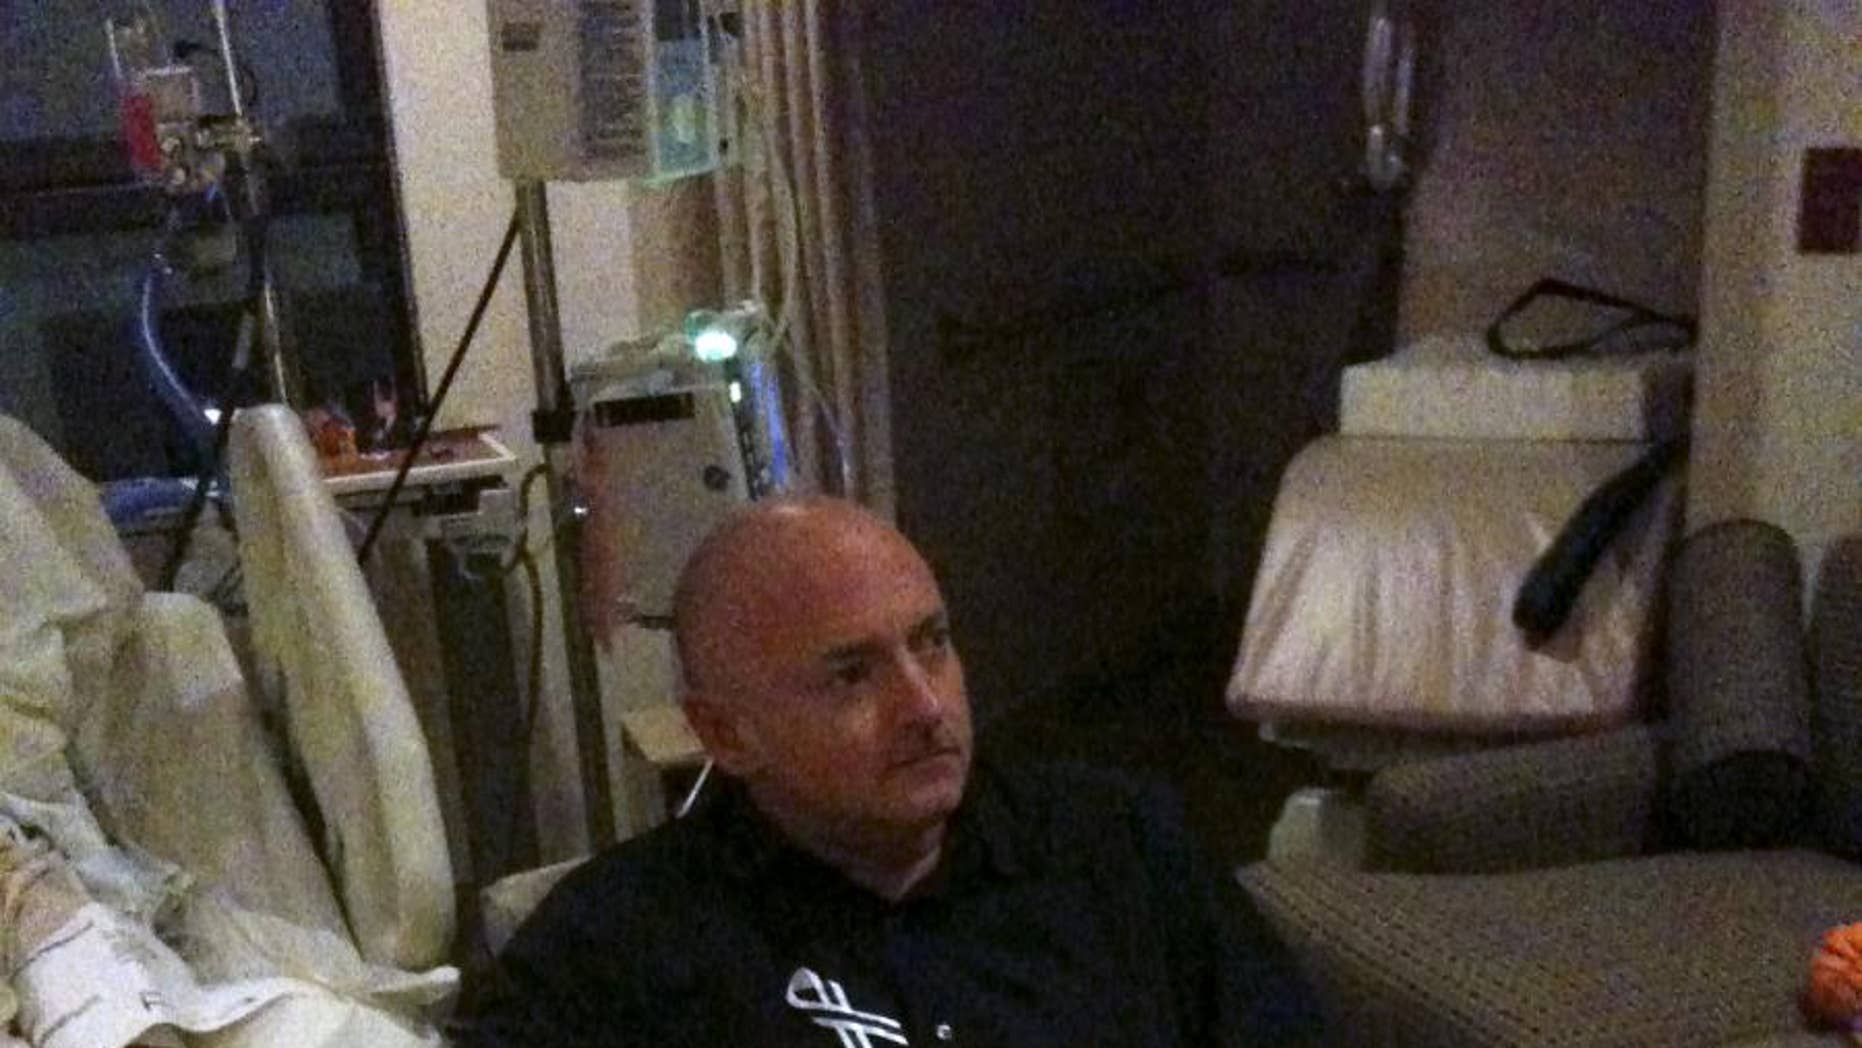 This photo provided by the office of U.S. Rep. Gabrielle Giffords shows Mark Kelly watching the State of the Union address with Giffords in her hospital room in Houston, Tuesday, Jan. 25, 2011. (AP Photo/Office of U.S. Rep. Gabrielle Giffords)